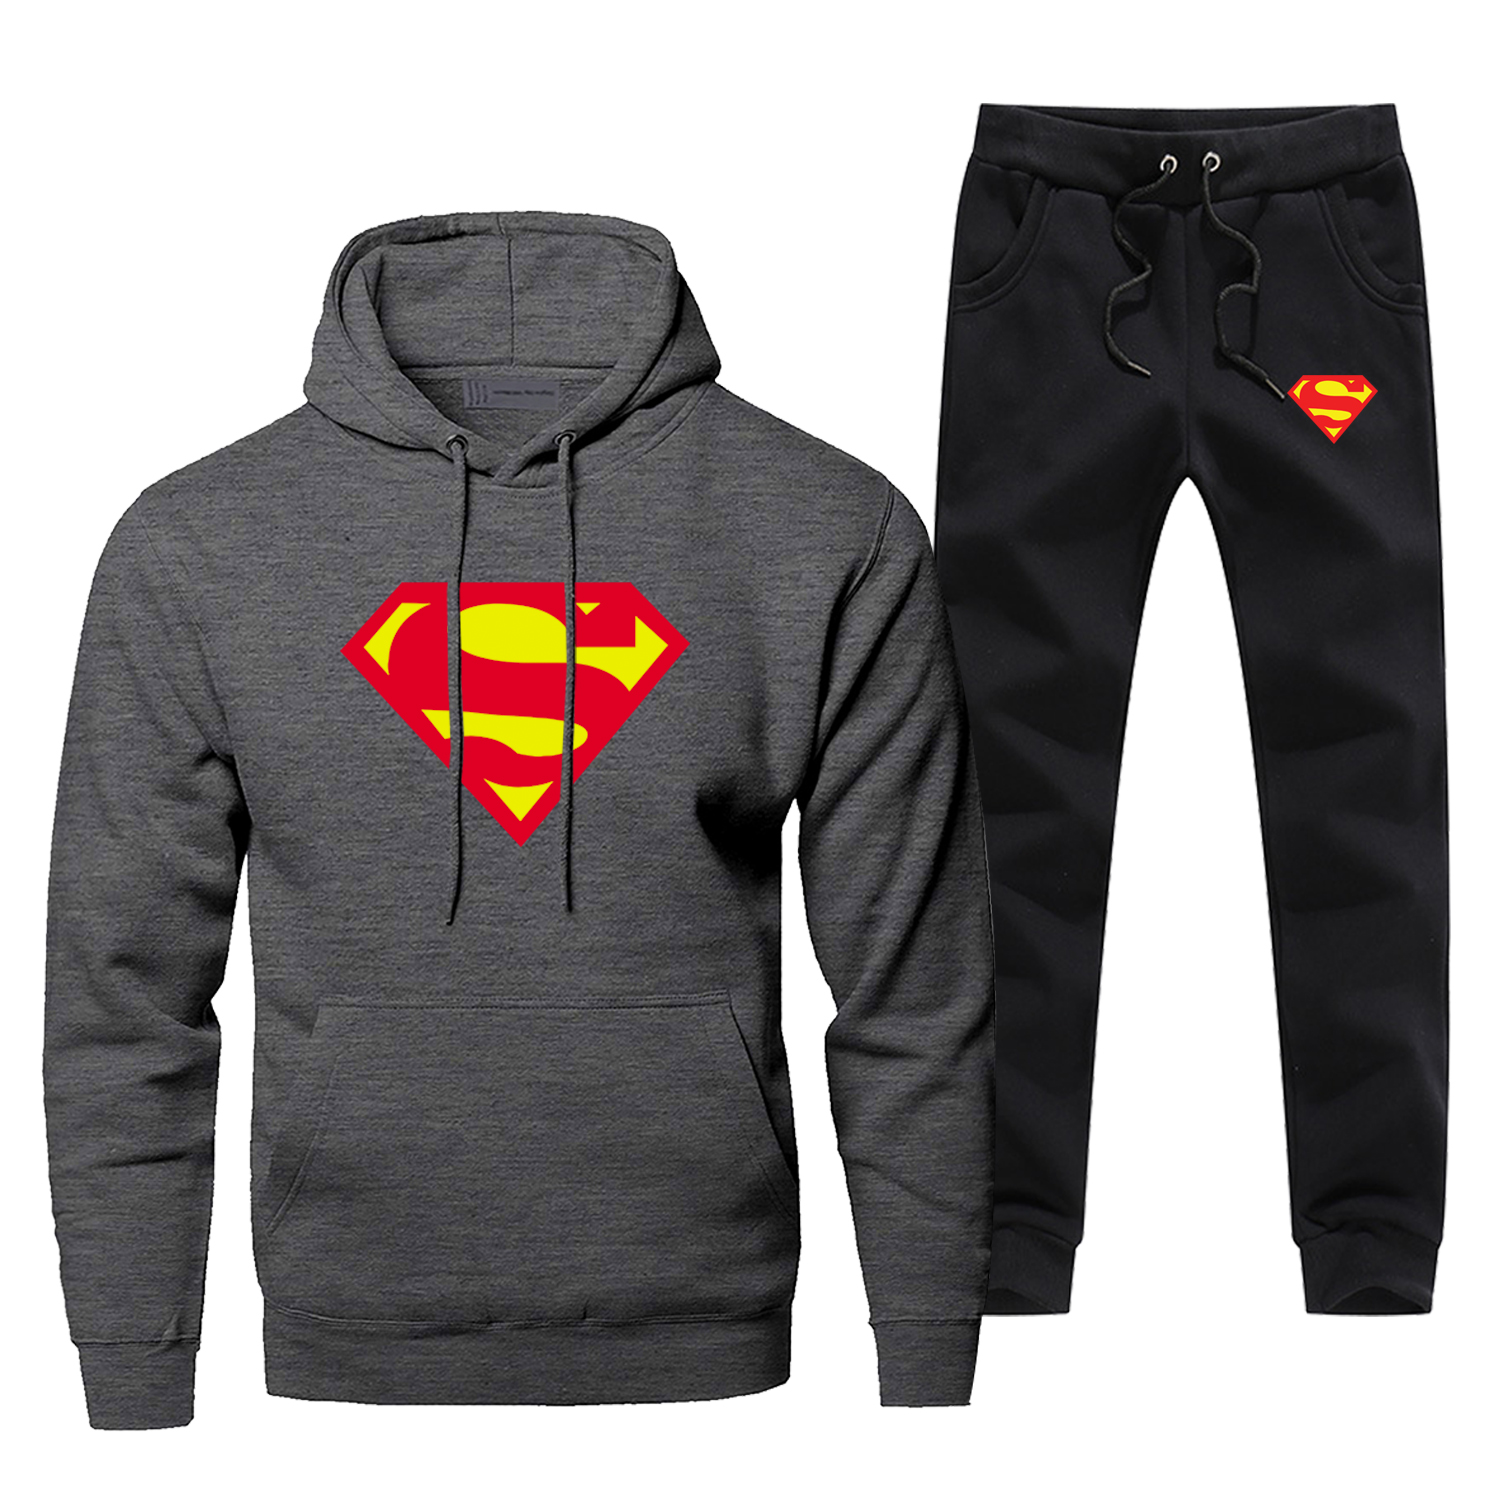 Super Hero Print Busos For Men Superman Hoodies 2019 New Arrival Fashion Winter Warm Thermal Underwear Casual Fleece Men's Sets